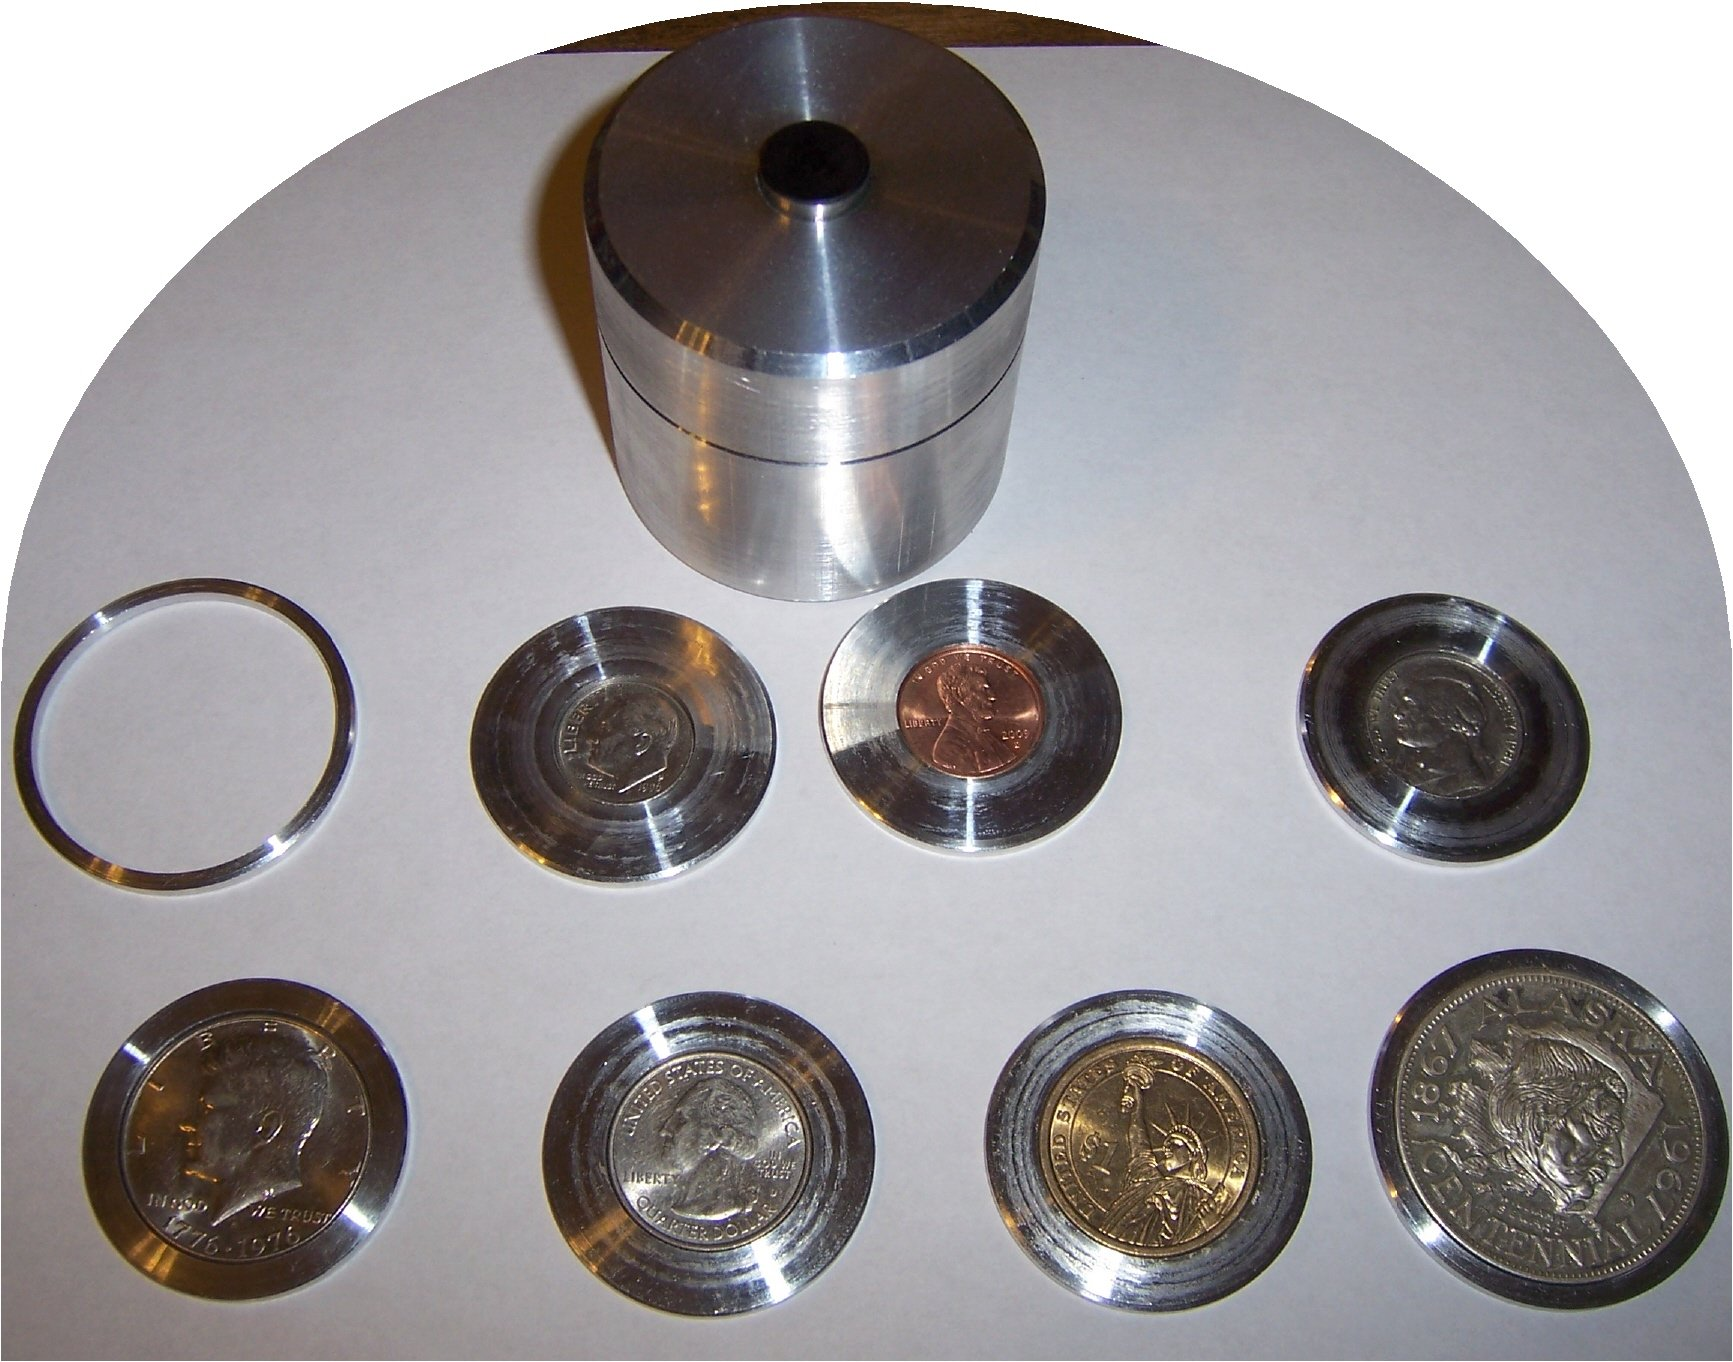 Coin Ring Center Punch Kit 1.75'' for Rounds. Comes with 3 Punches and 8 Spacers!!! by Austin Swenson